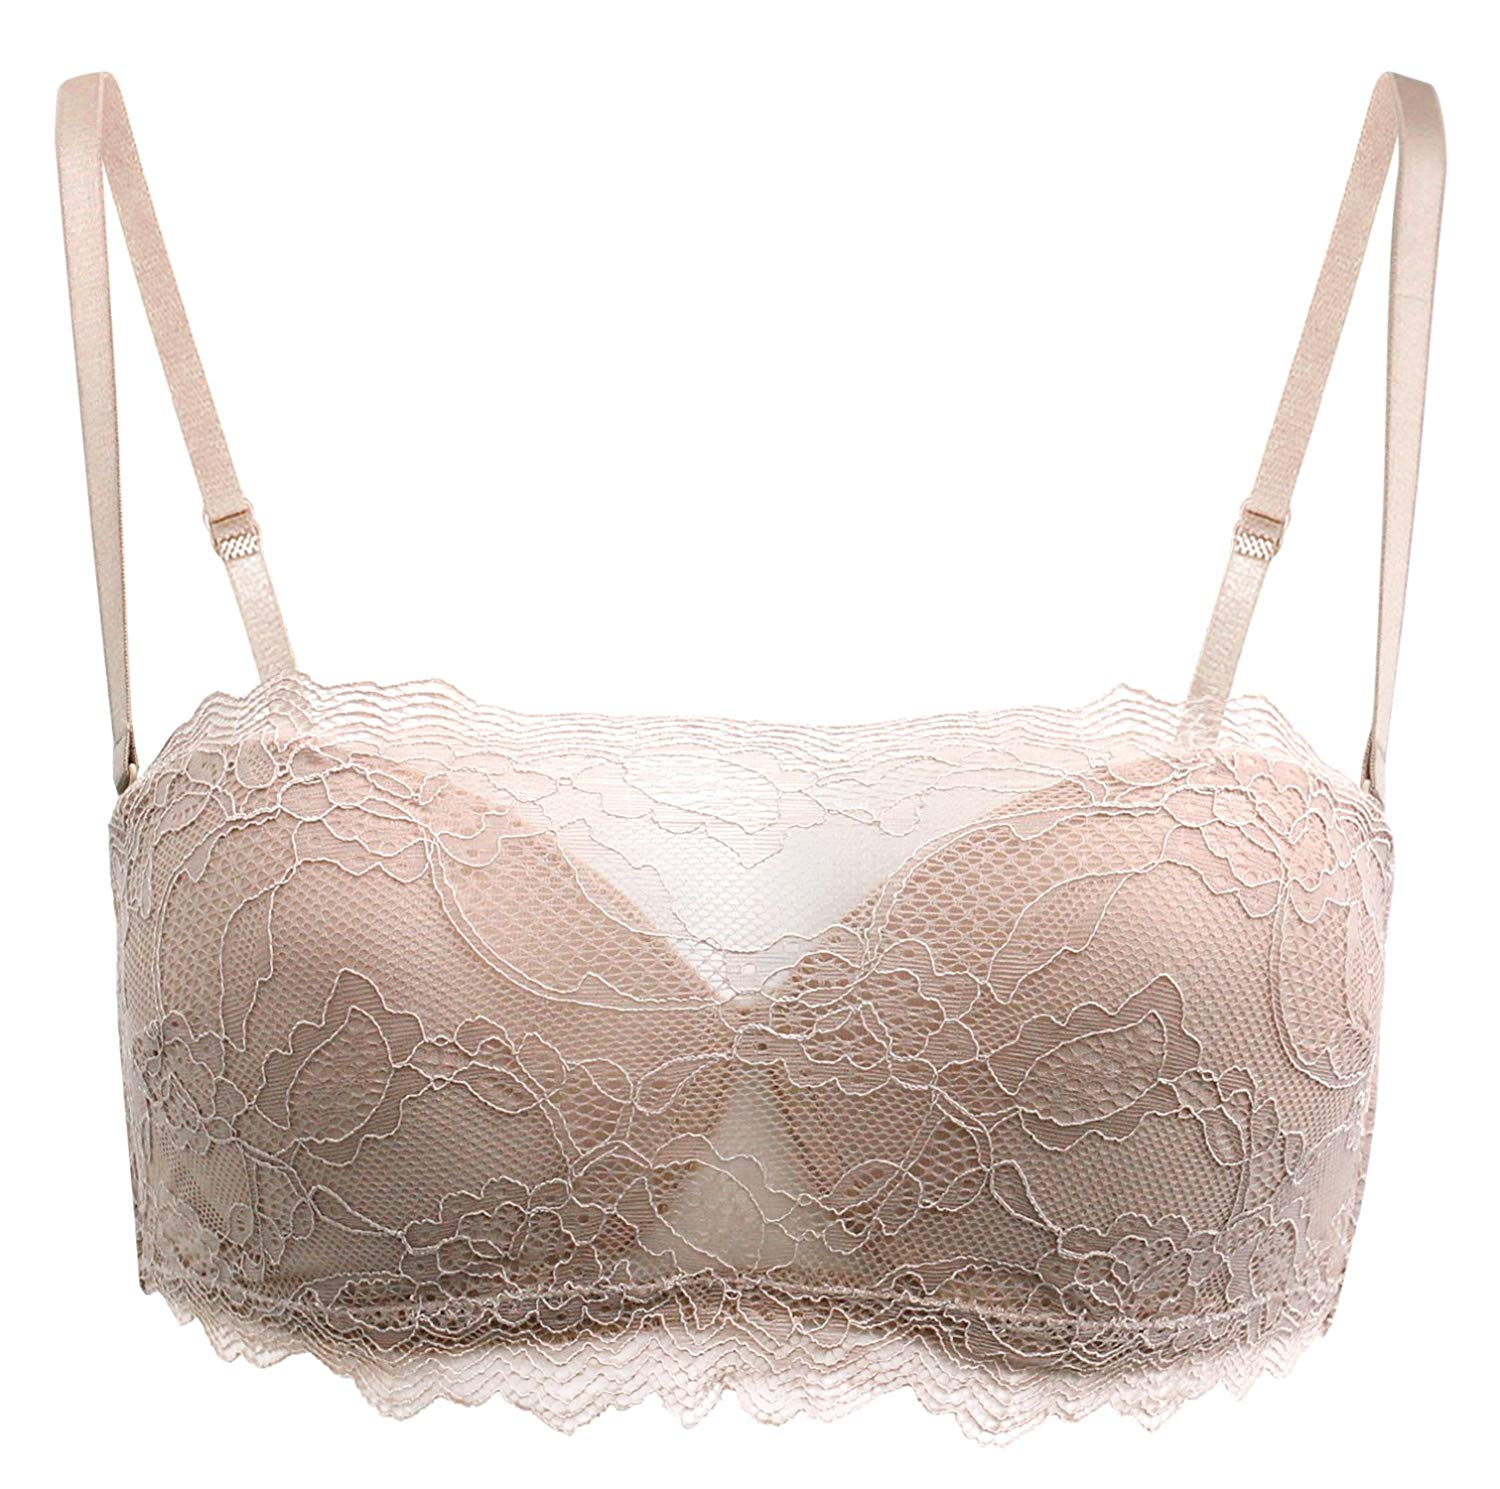 6ca63f69954bb Get Quotations · Real Women s Daphne Strapless Multi-way Lace Cami  Balconette Bra